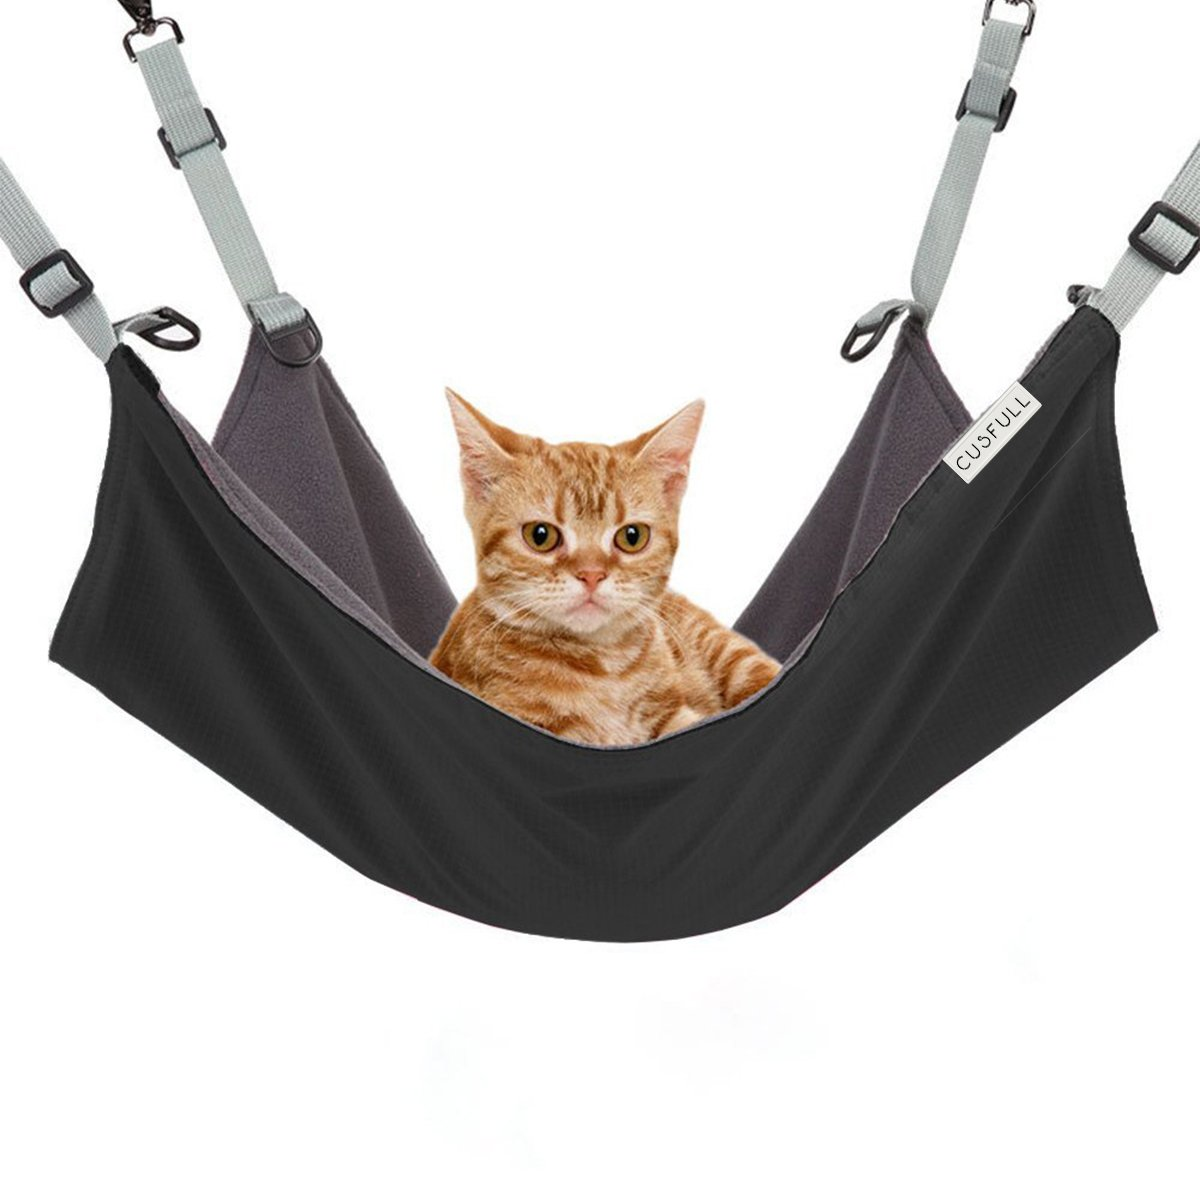 Cusfull Cat Hammock Bed Comfortable Hanging Pet Hammock Bed for Cats/Small Dogs/Rabbits/other Small Animals 22 x17 in (Black)